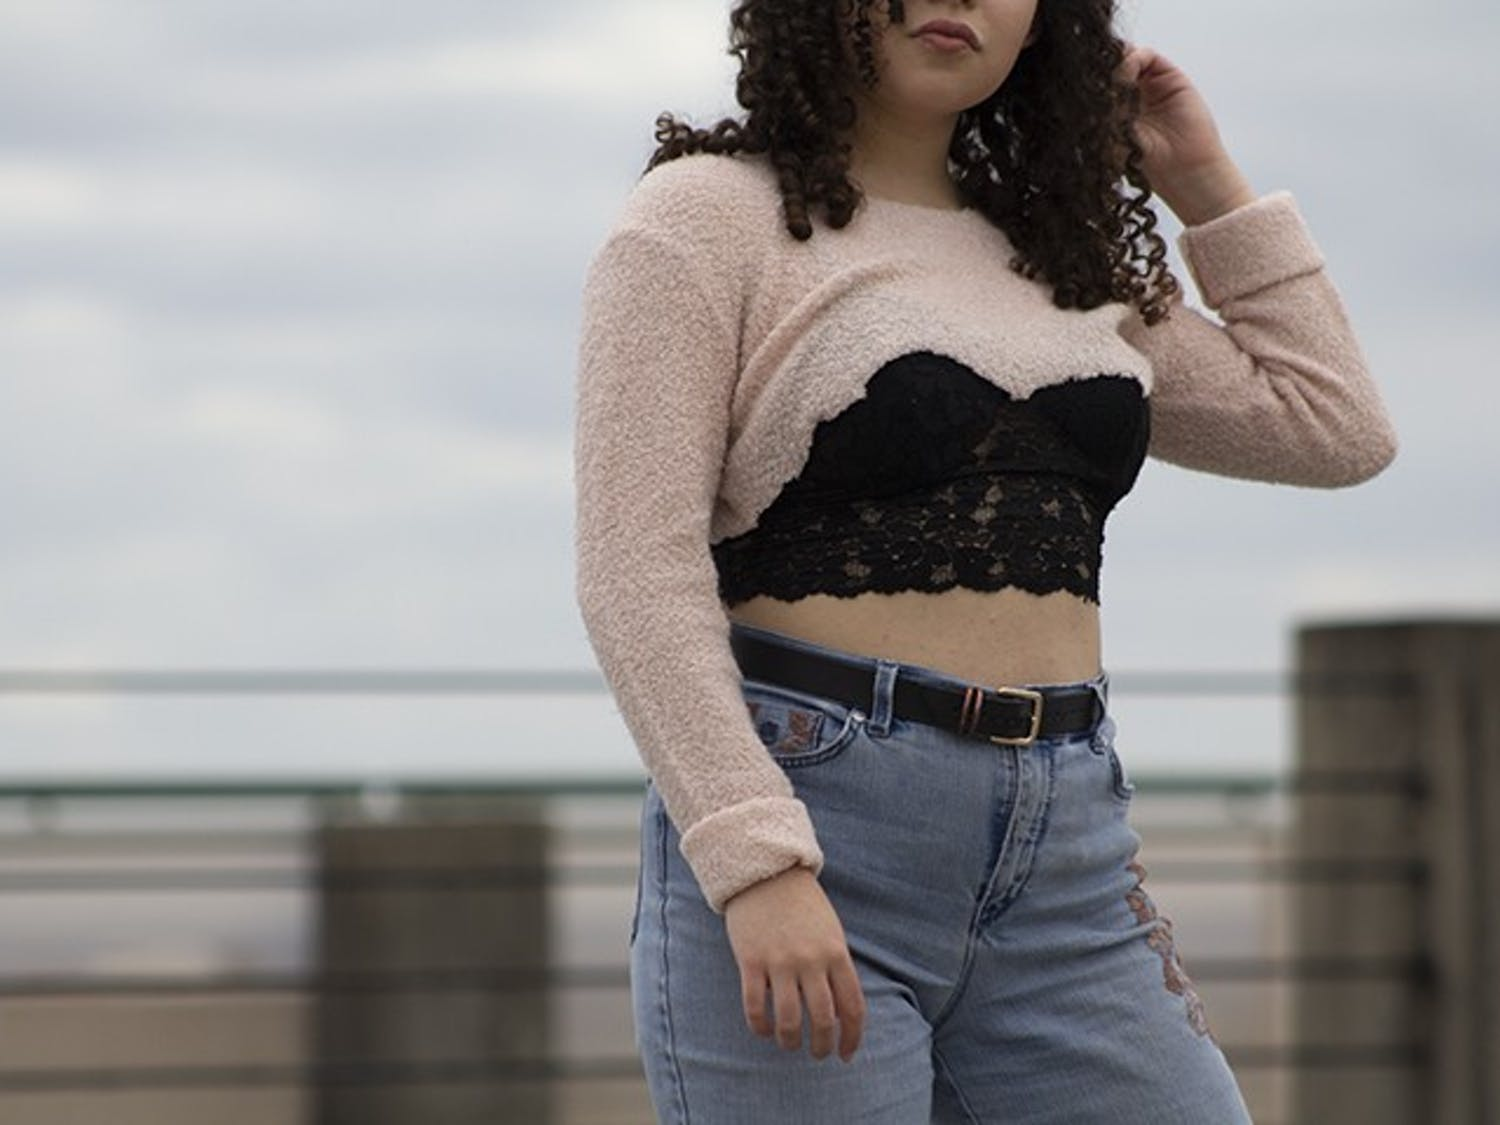 Wearing lace bralettes became a popular trend within the last four years and can be styled in a variety of ways, one being under thrifted sweaters with baggy pants and a belt.